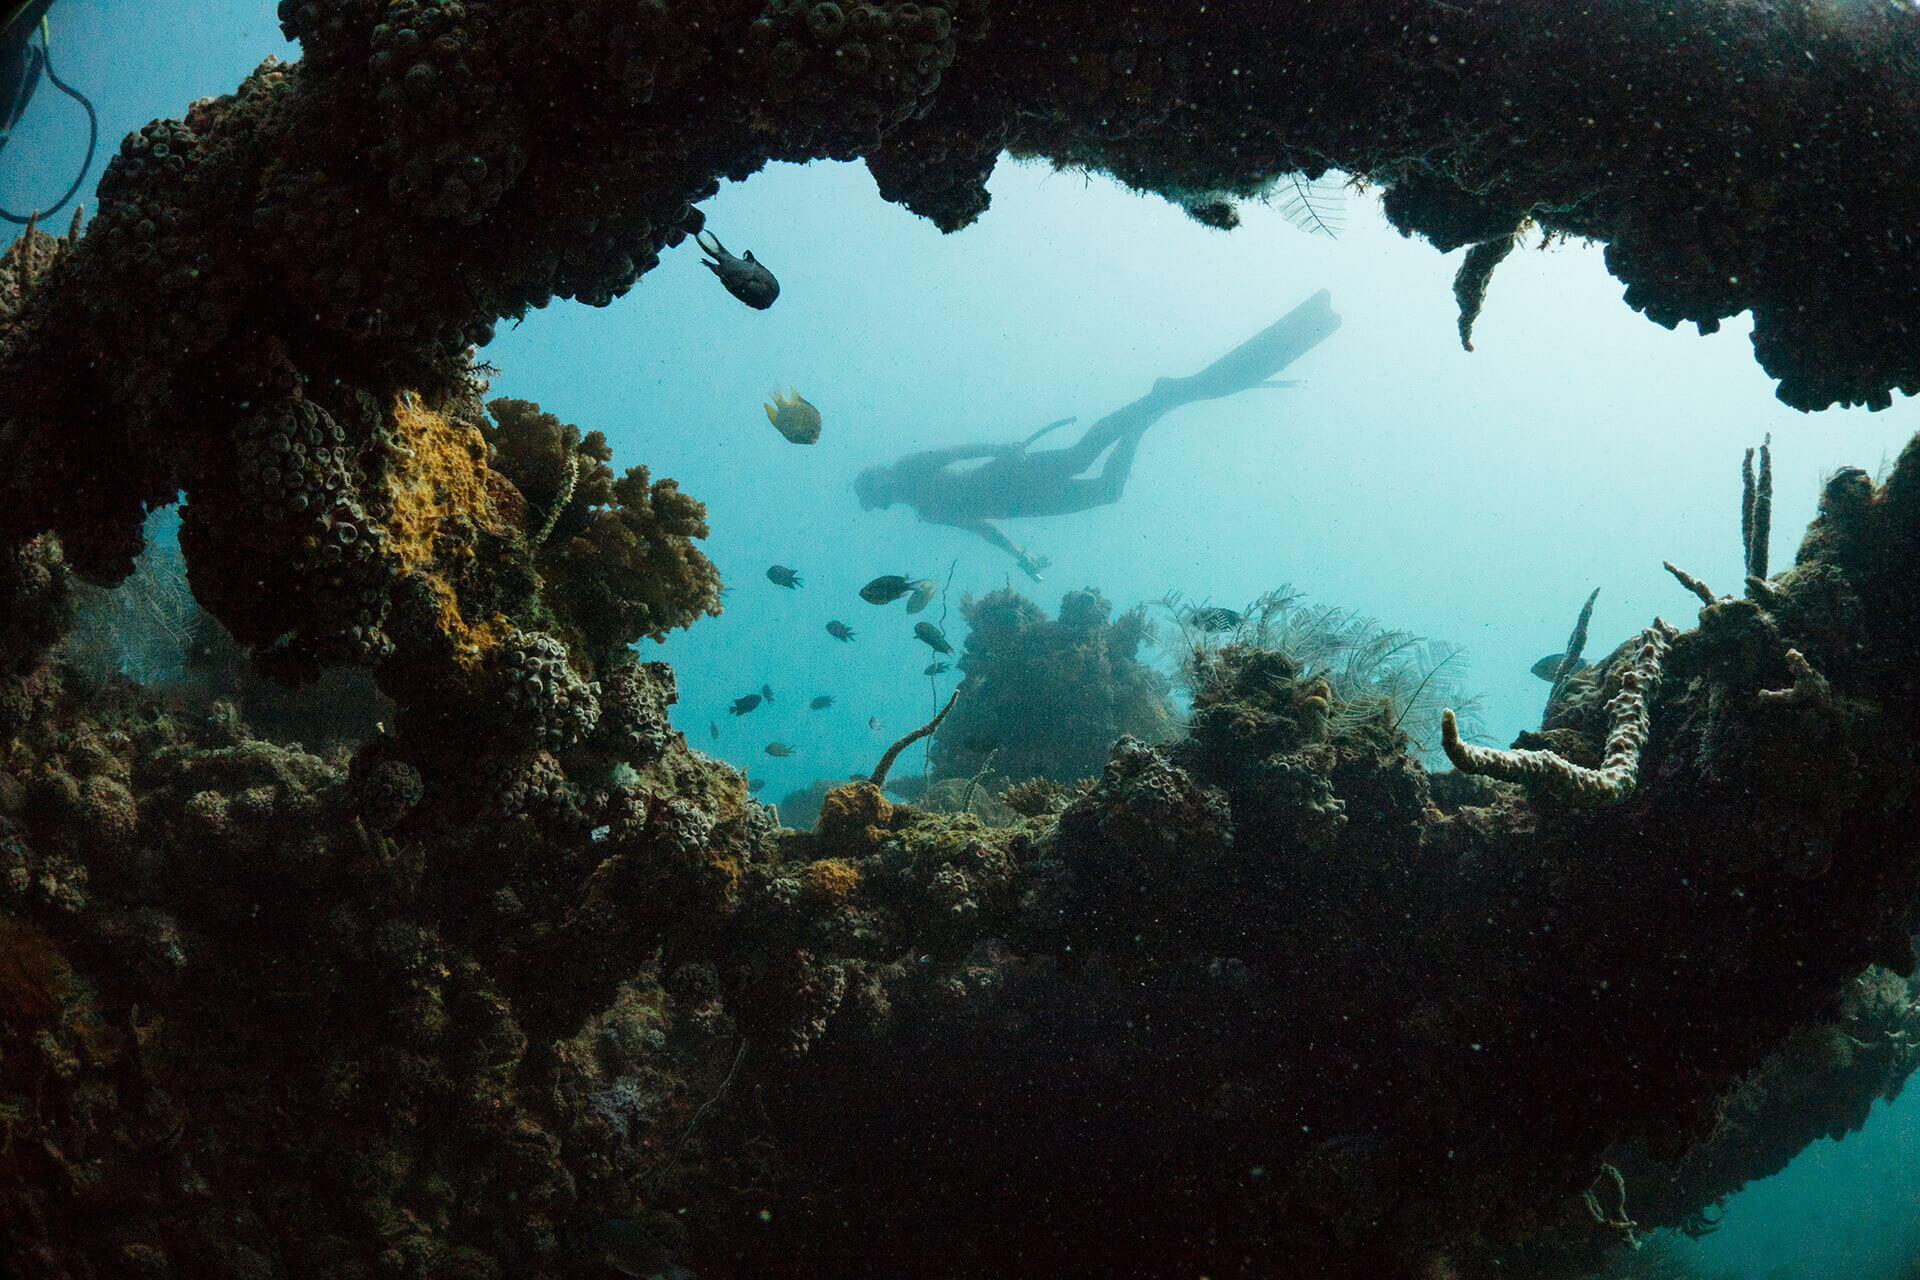 Corals and fish with a diver, photo by Francisco Guerrero